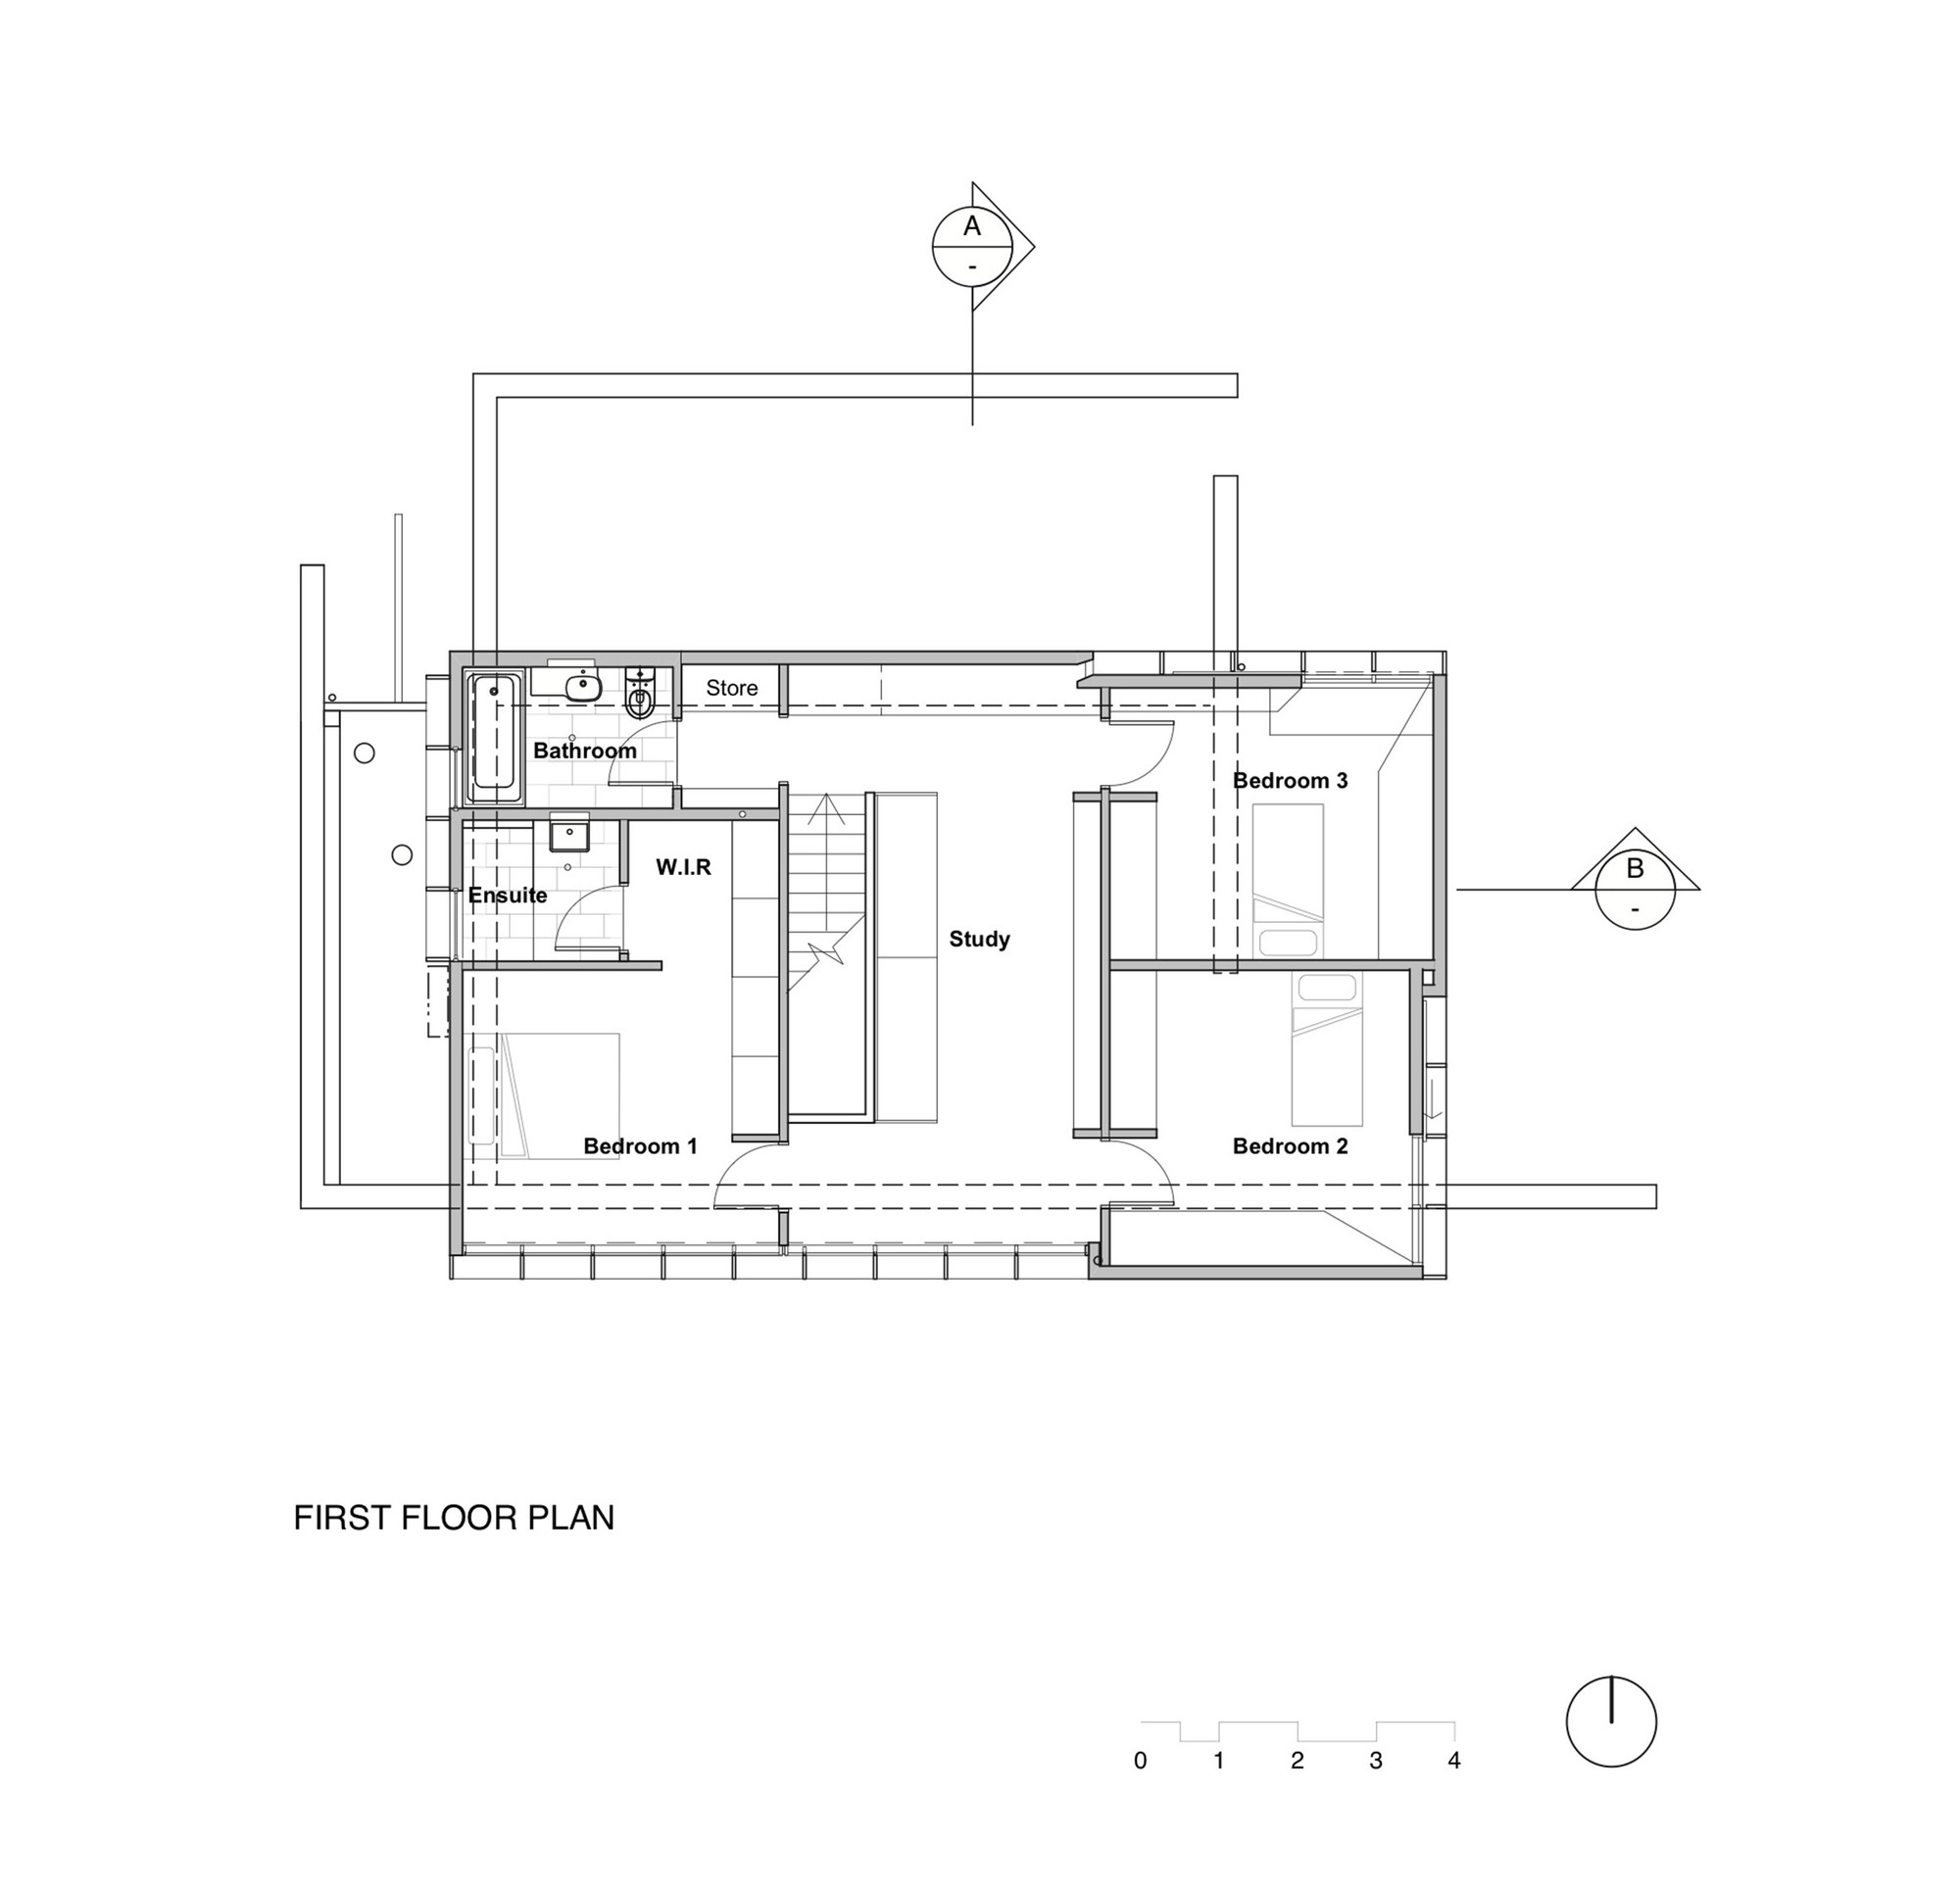 house floor plans perth home design and style 6 bedroom house plans perth corepad info pinterest